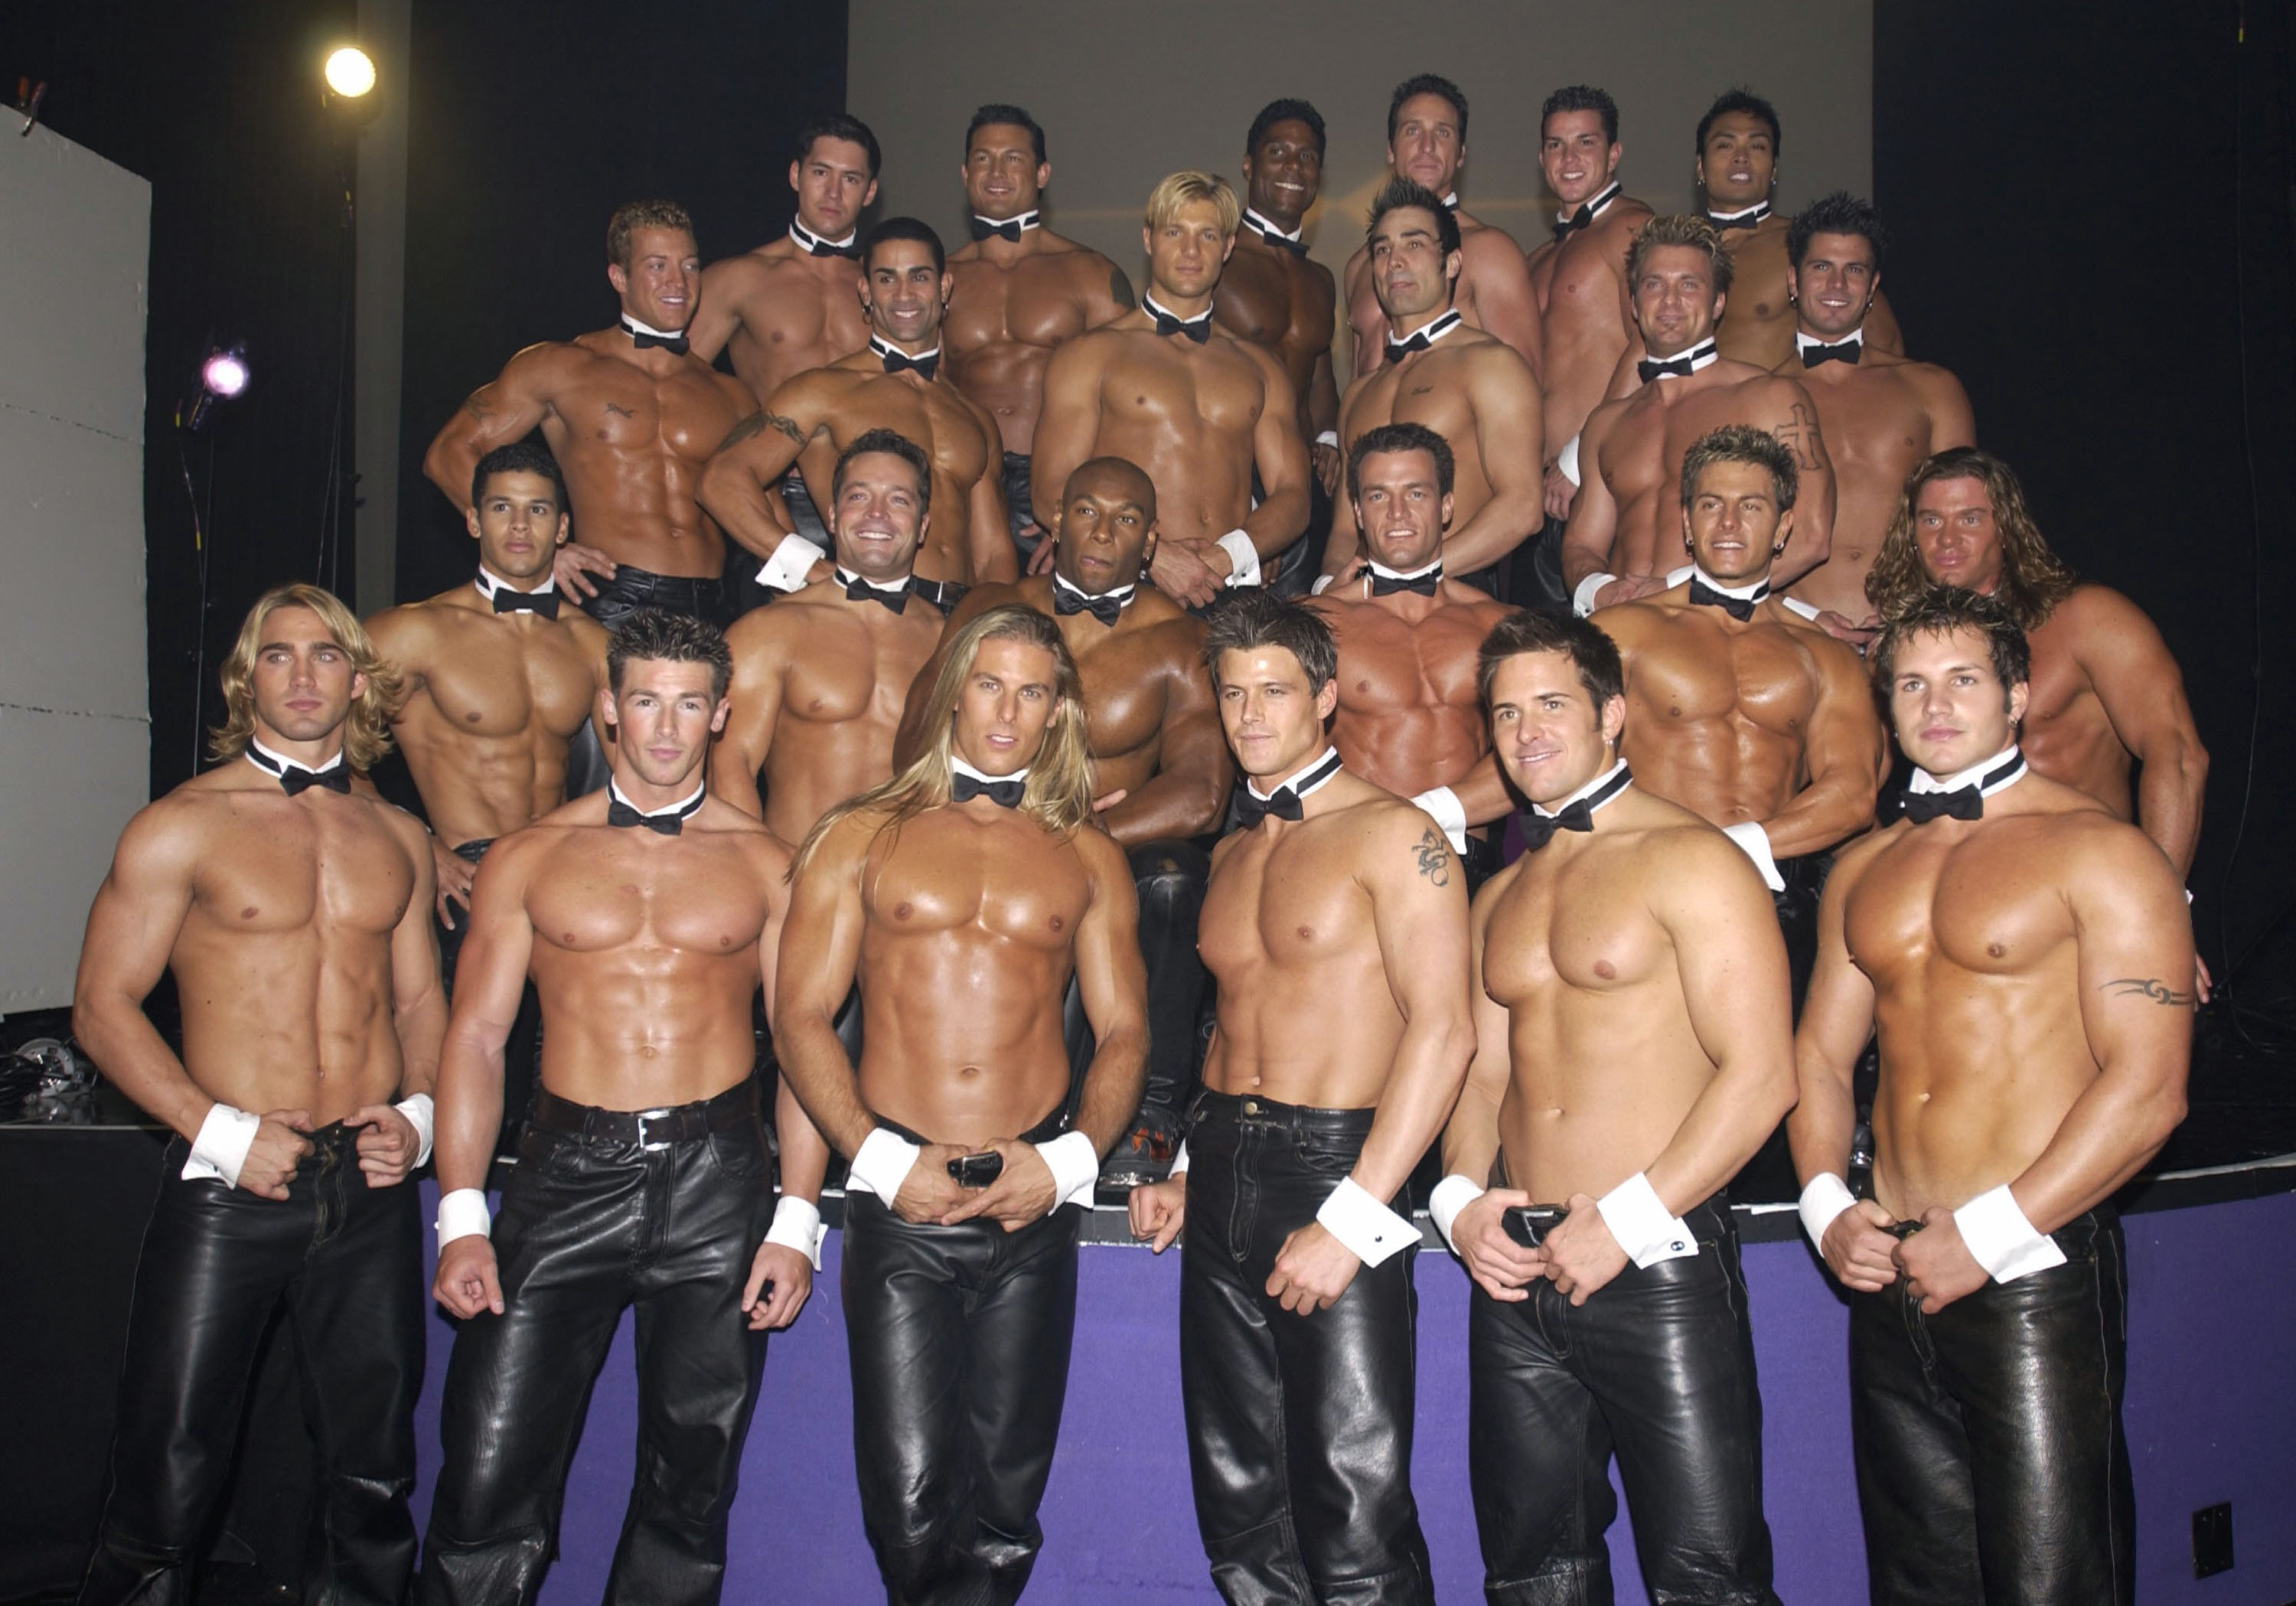 image chippendales first all male stripping group make